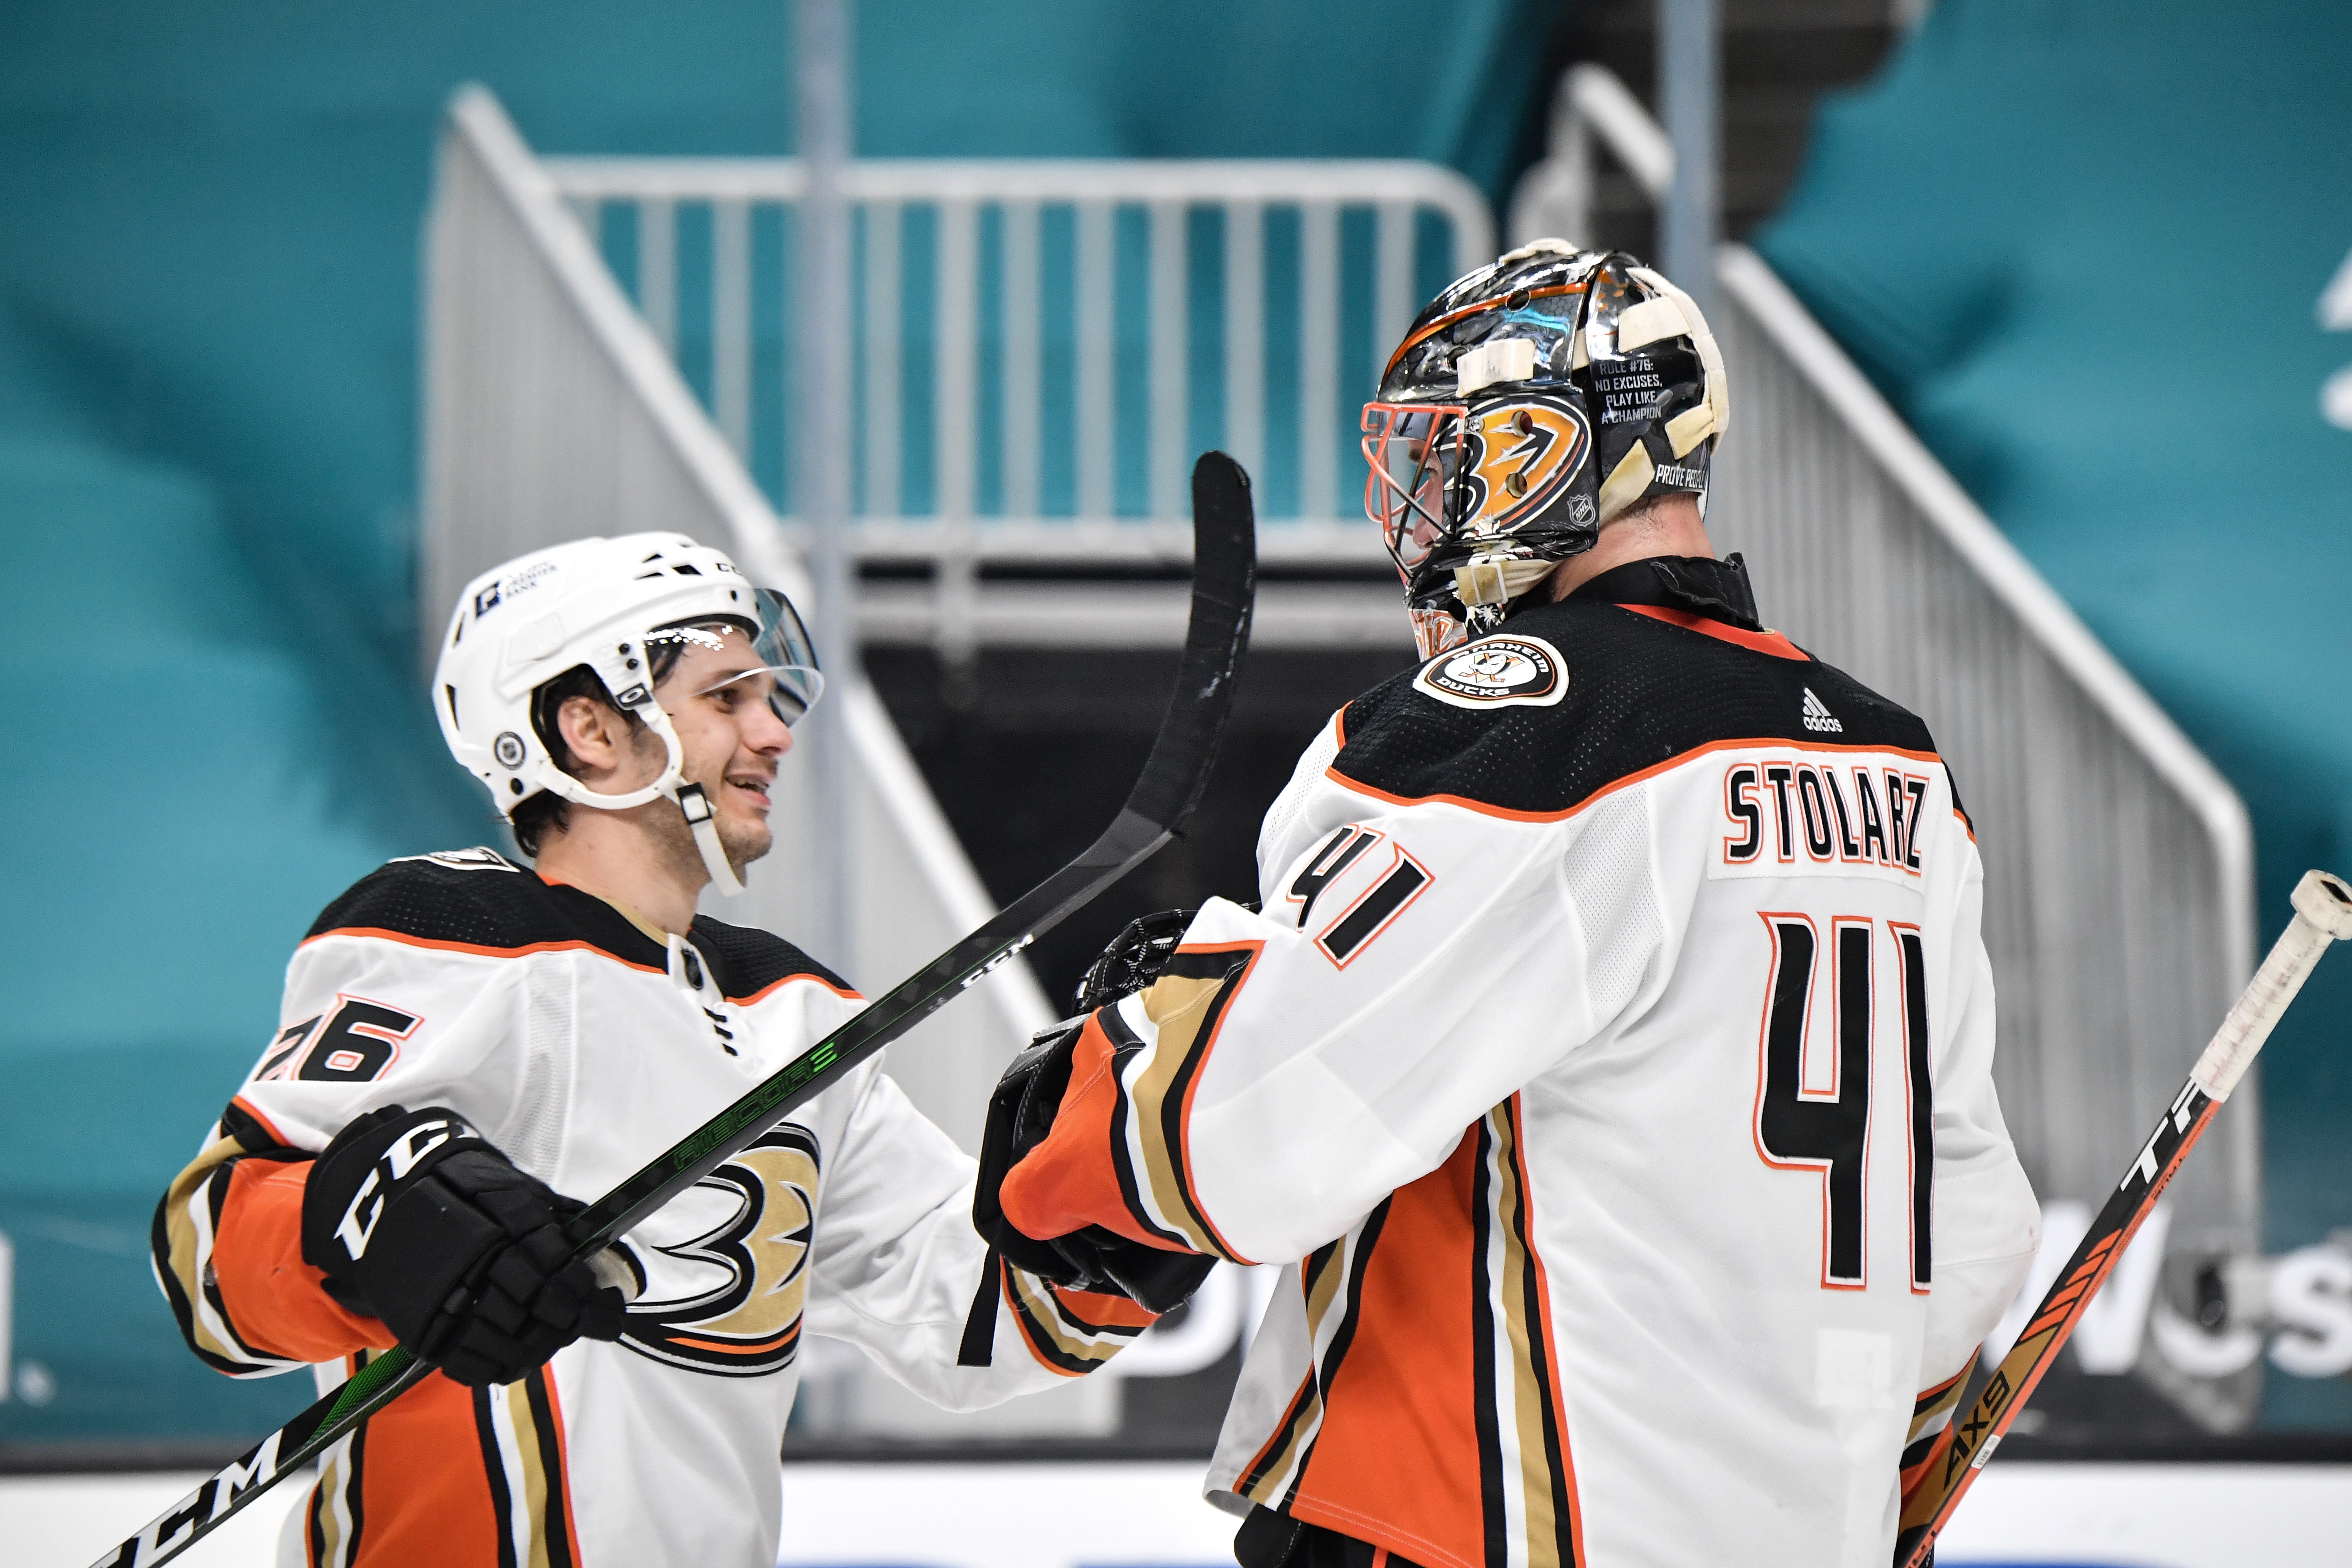 Anthony Stolarz #41 and Andrew Agozzino #26 of the Anaheim Ducks celebrate the win against the San Jose Sharks at SAP Center on April 12, 2021 in San Jose, California.